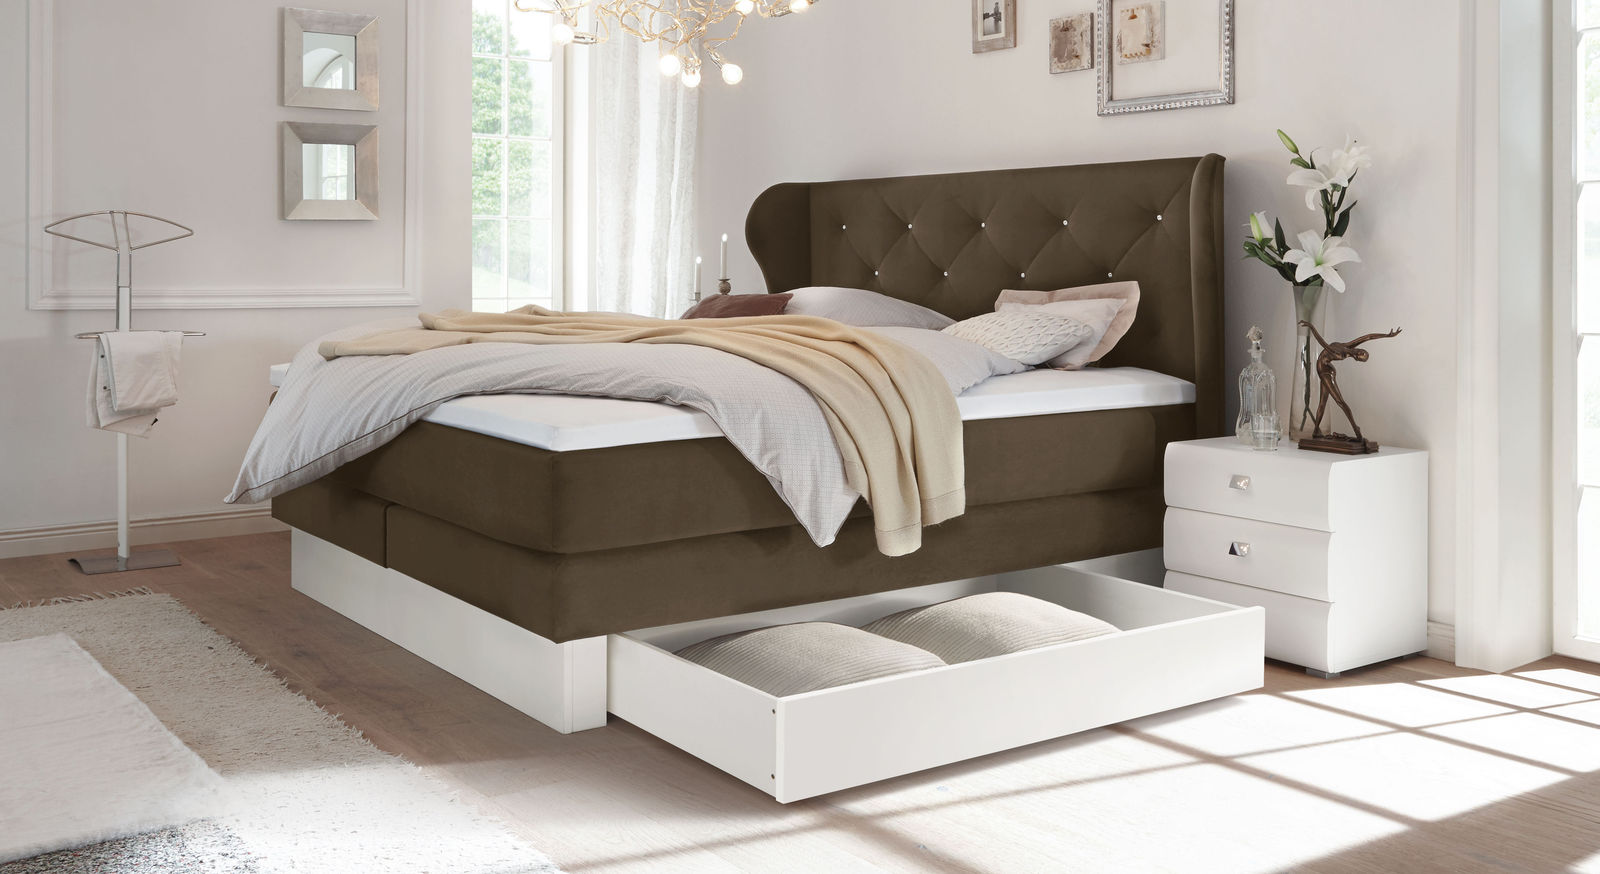 boxspringbett mit schubladen boxspringbett holz mit schubladen boxspringbett mit schubladen. Black Bedroom Furniture Sets. Home Design Ideas